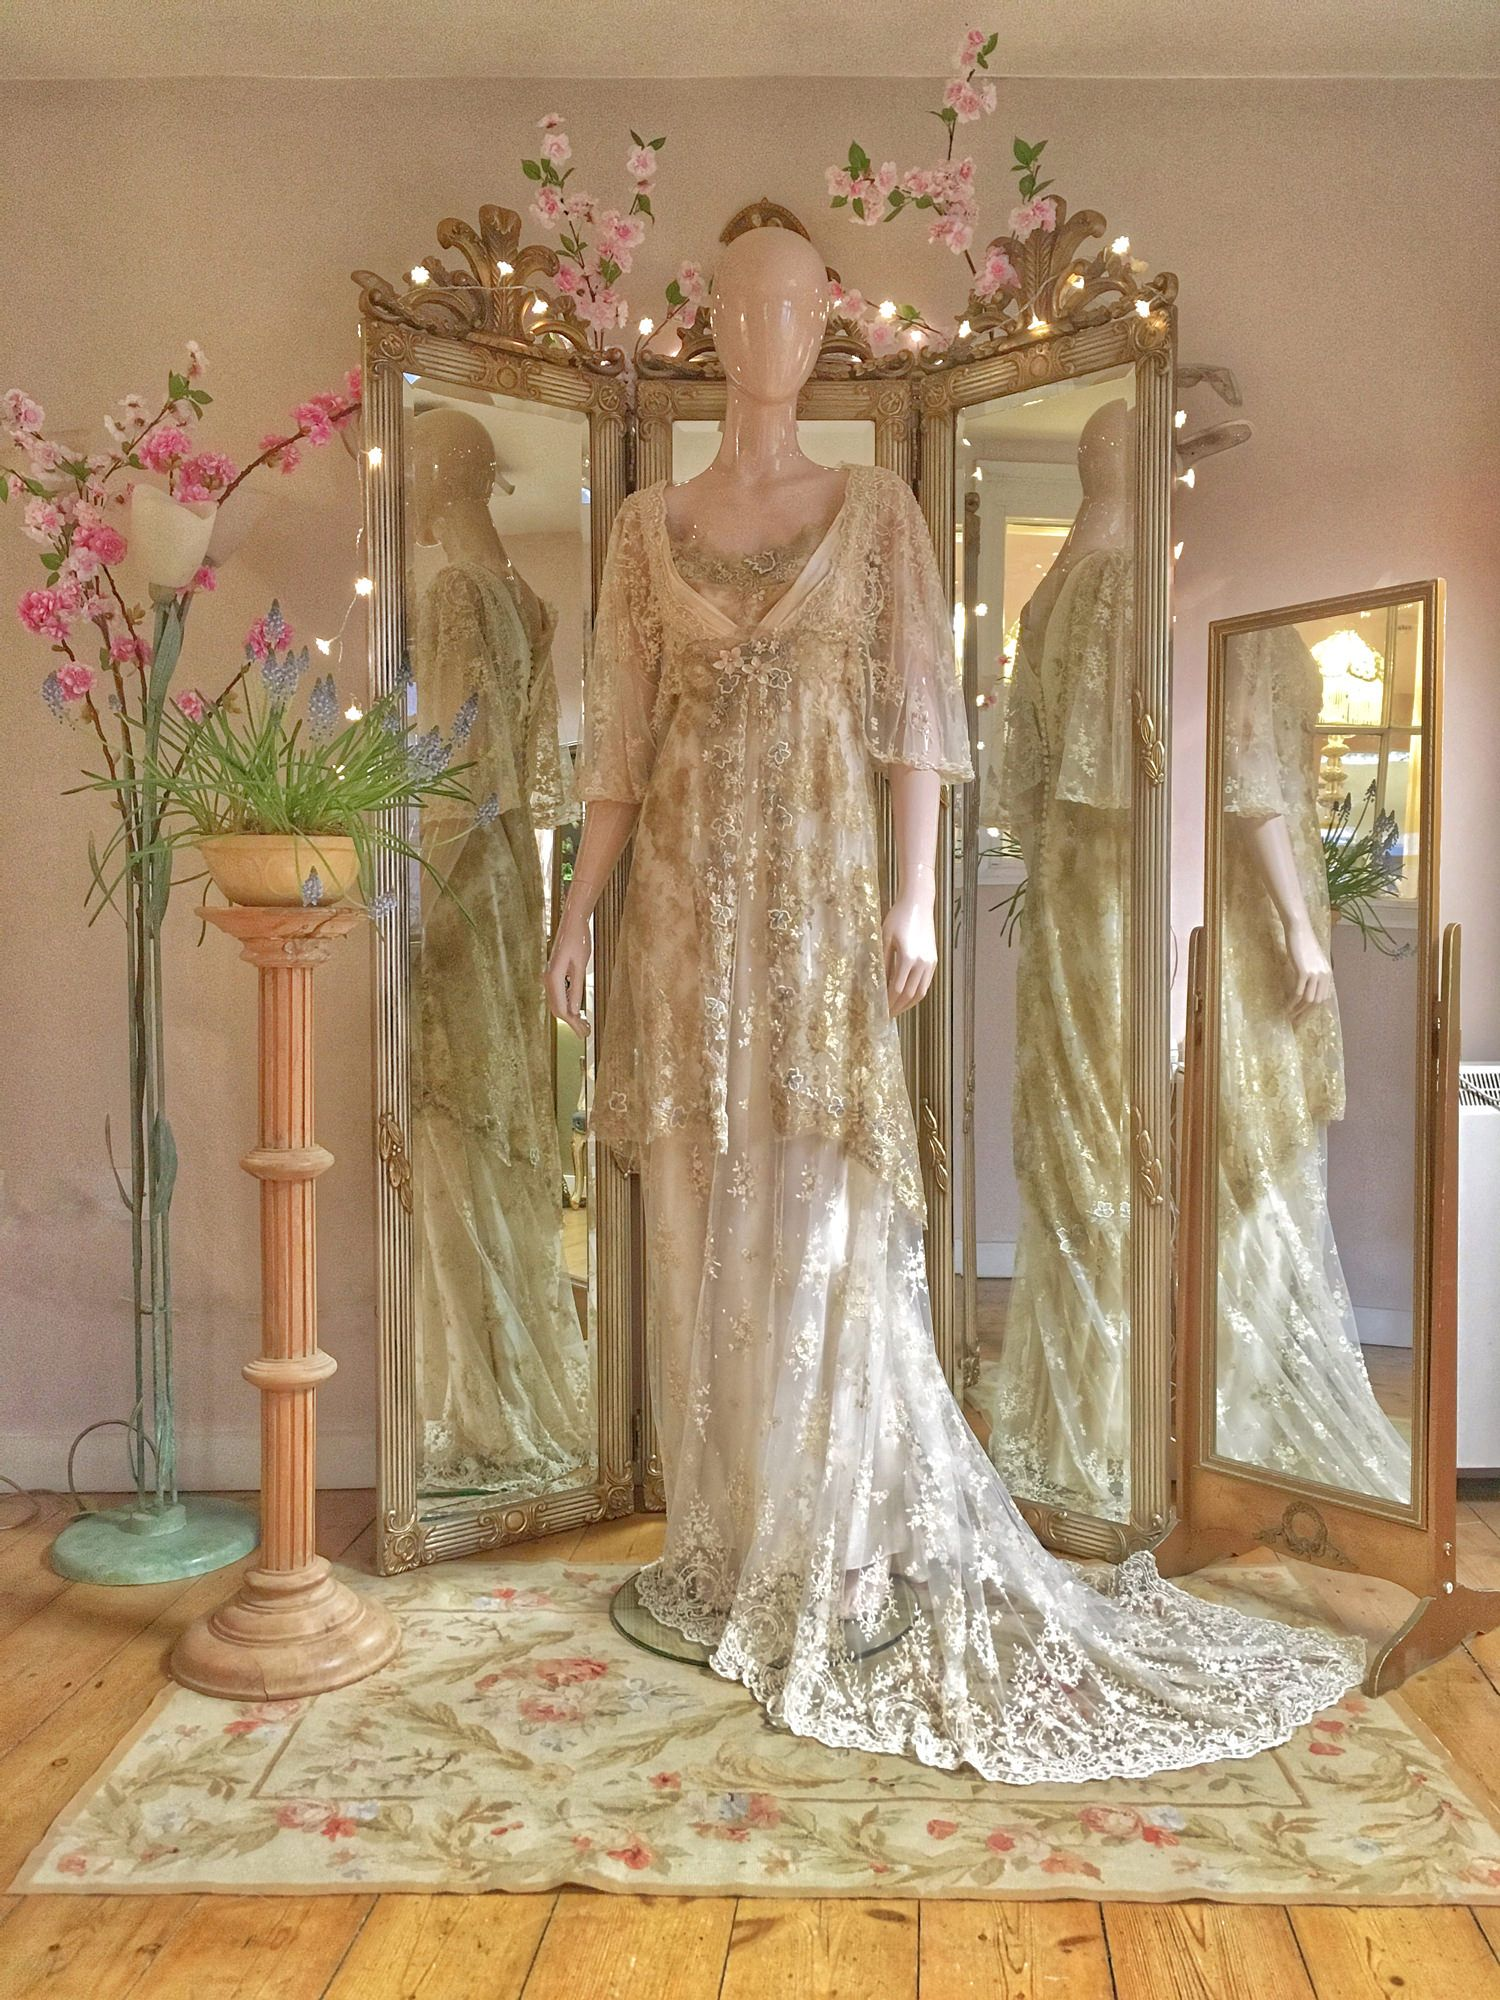 Pale Gold Cream Silk Edwardian Inspired Wedding Dress | Gold lace ...